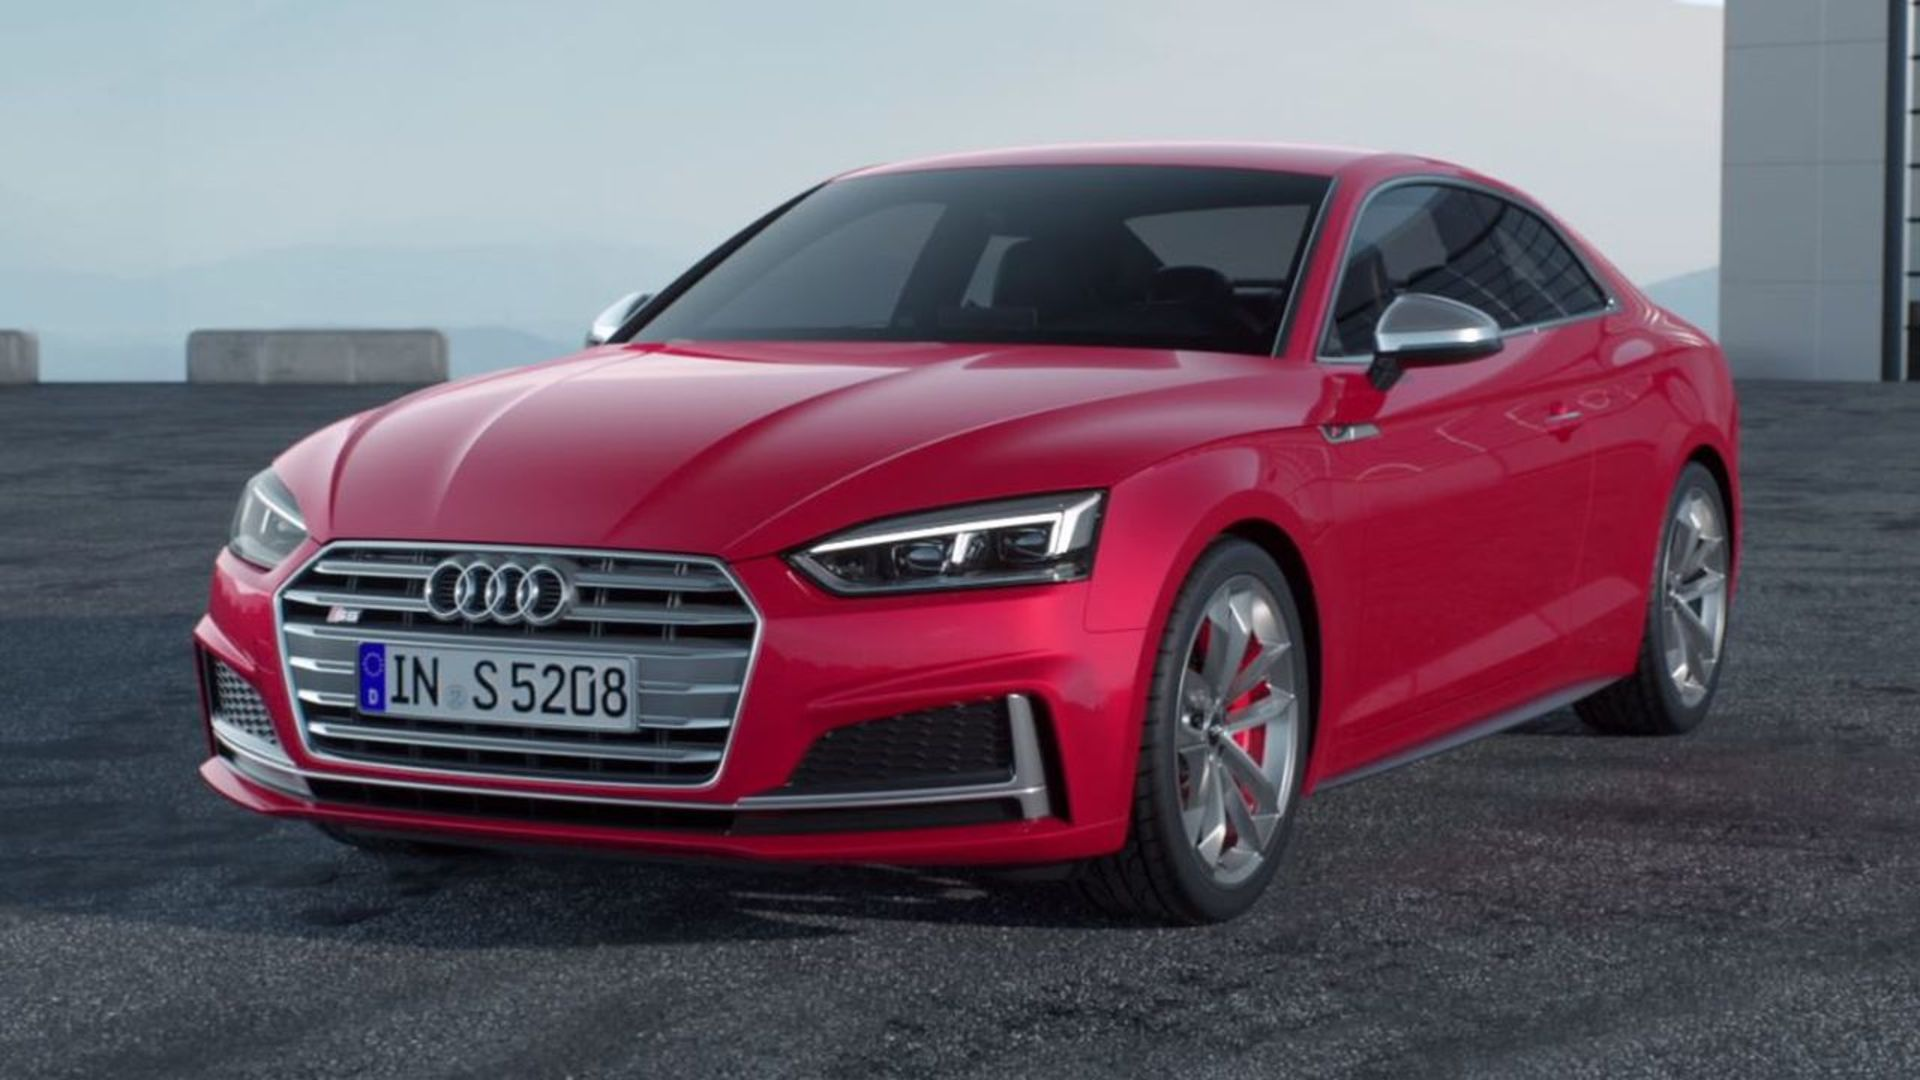 Audi S5 Coupé – Animation 3.0 TFSI, drive train